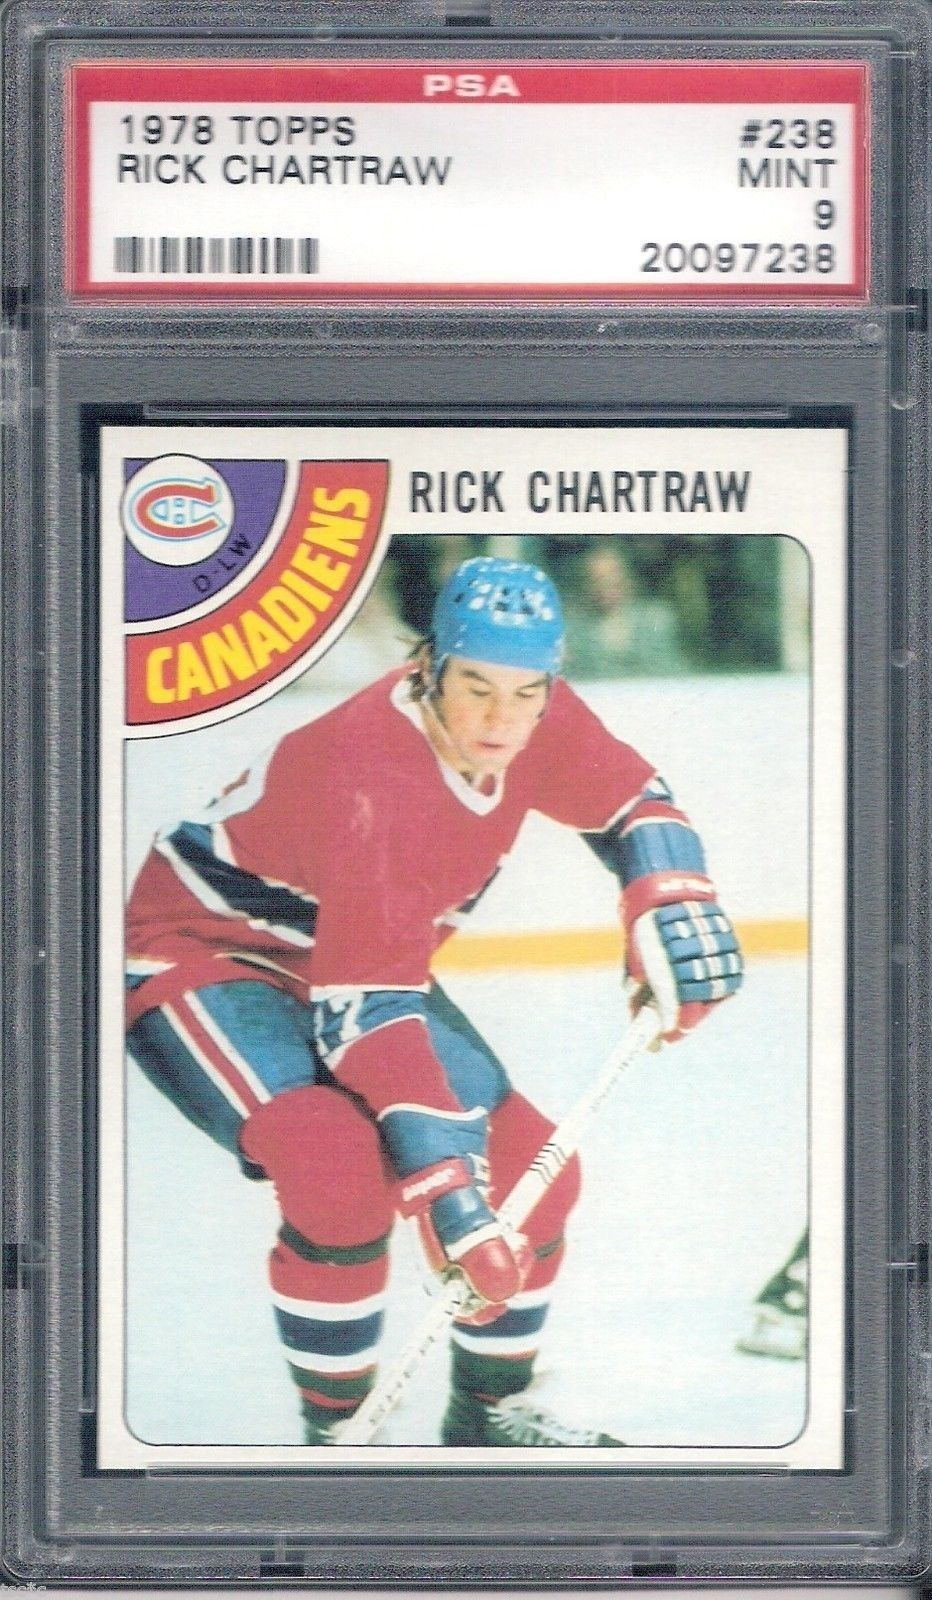 1978 Topps #238 Rick Chartraw Montreal Canadiens PSA 9